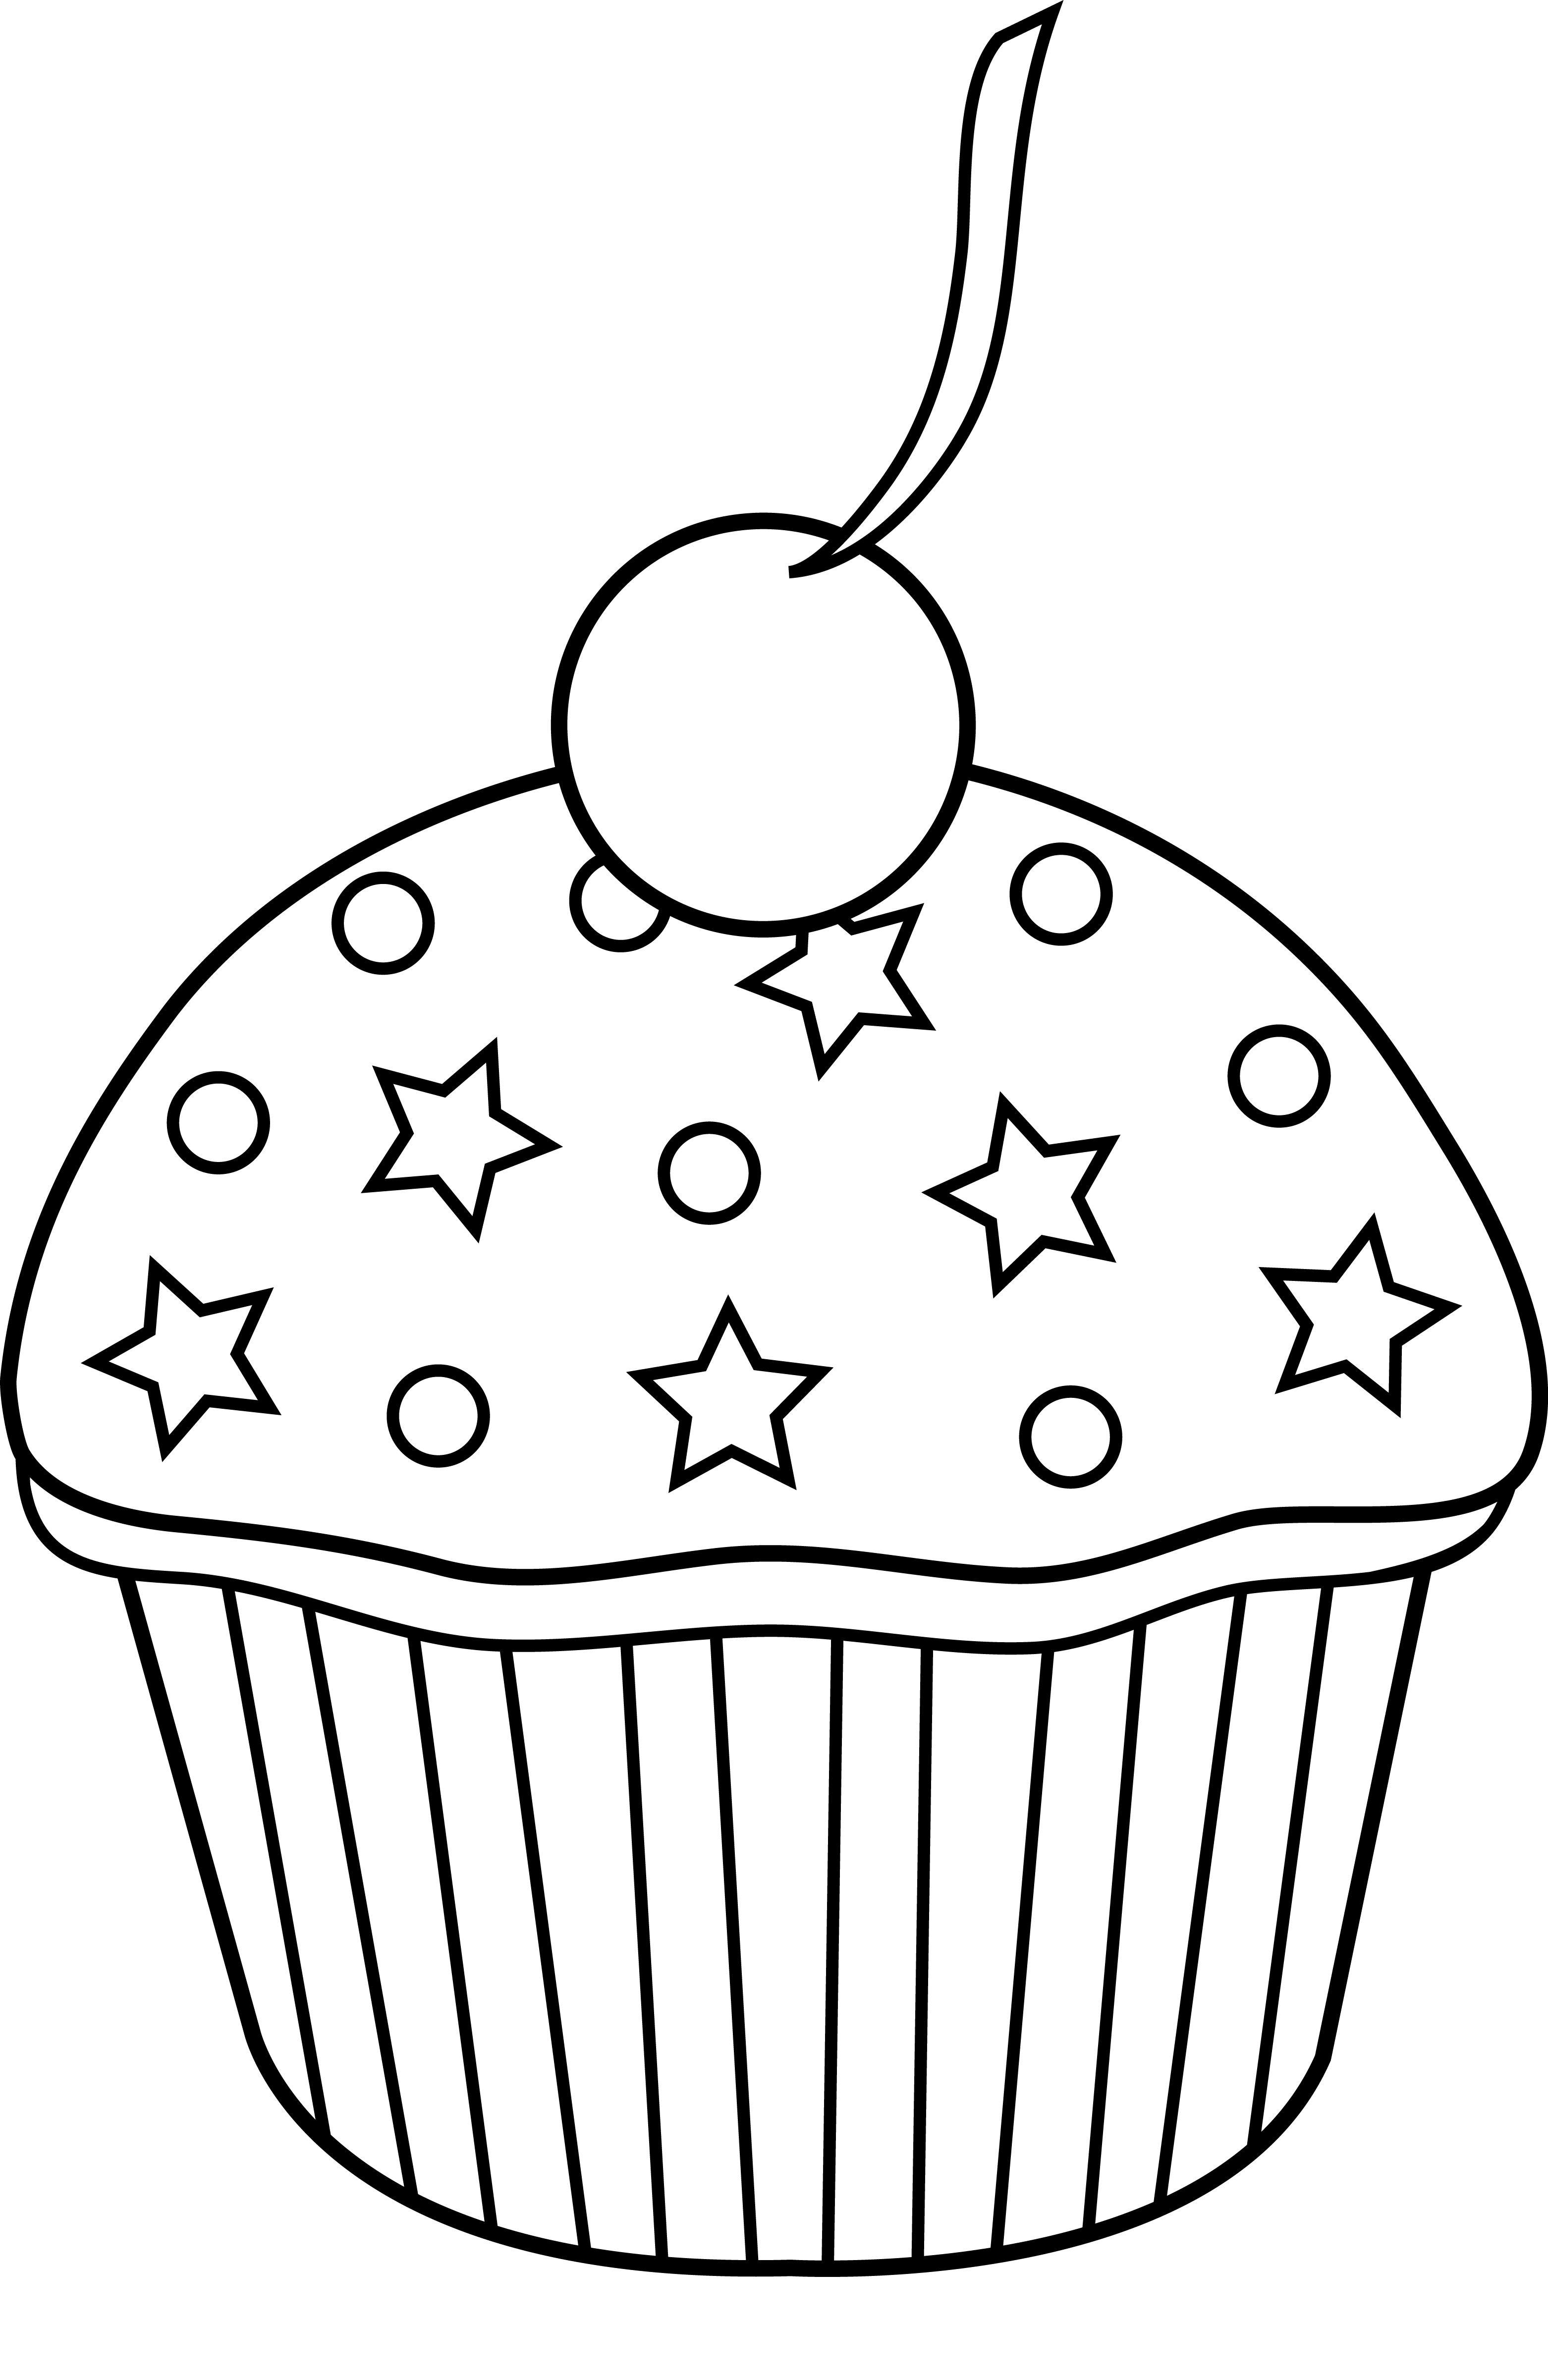 clipart black and white download Cupcake outline clipart black and white. Muffin baking free on